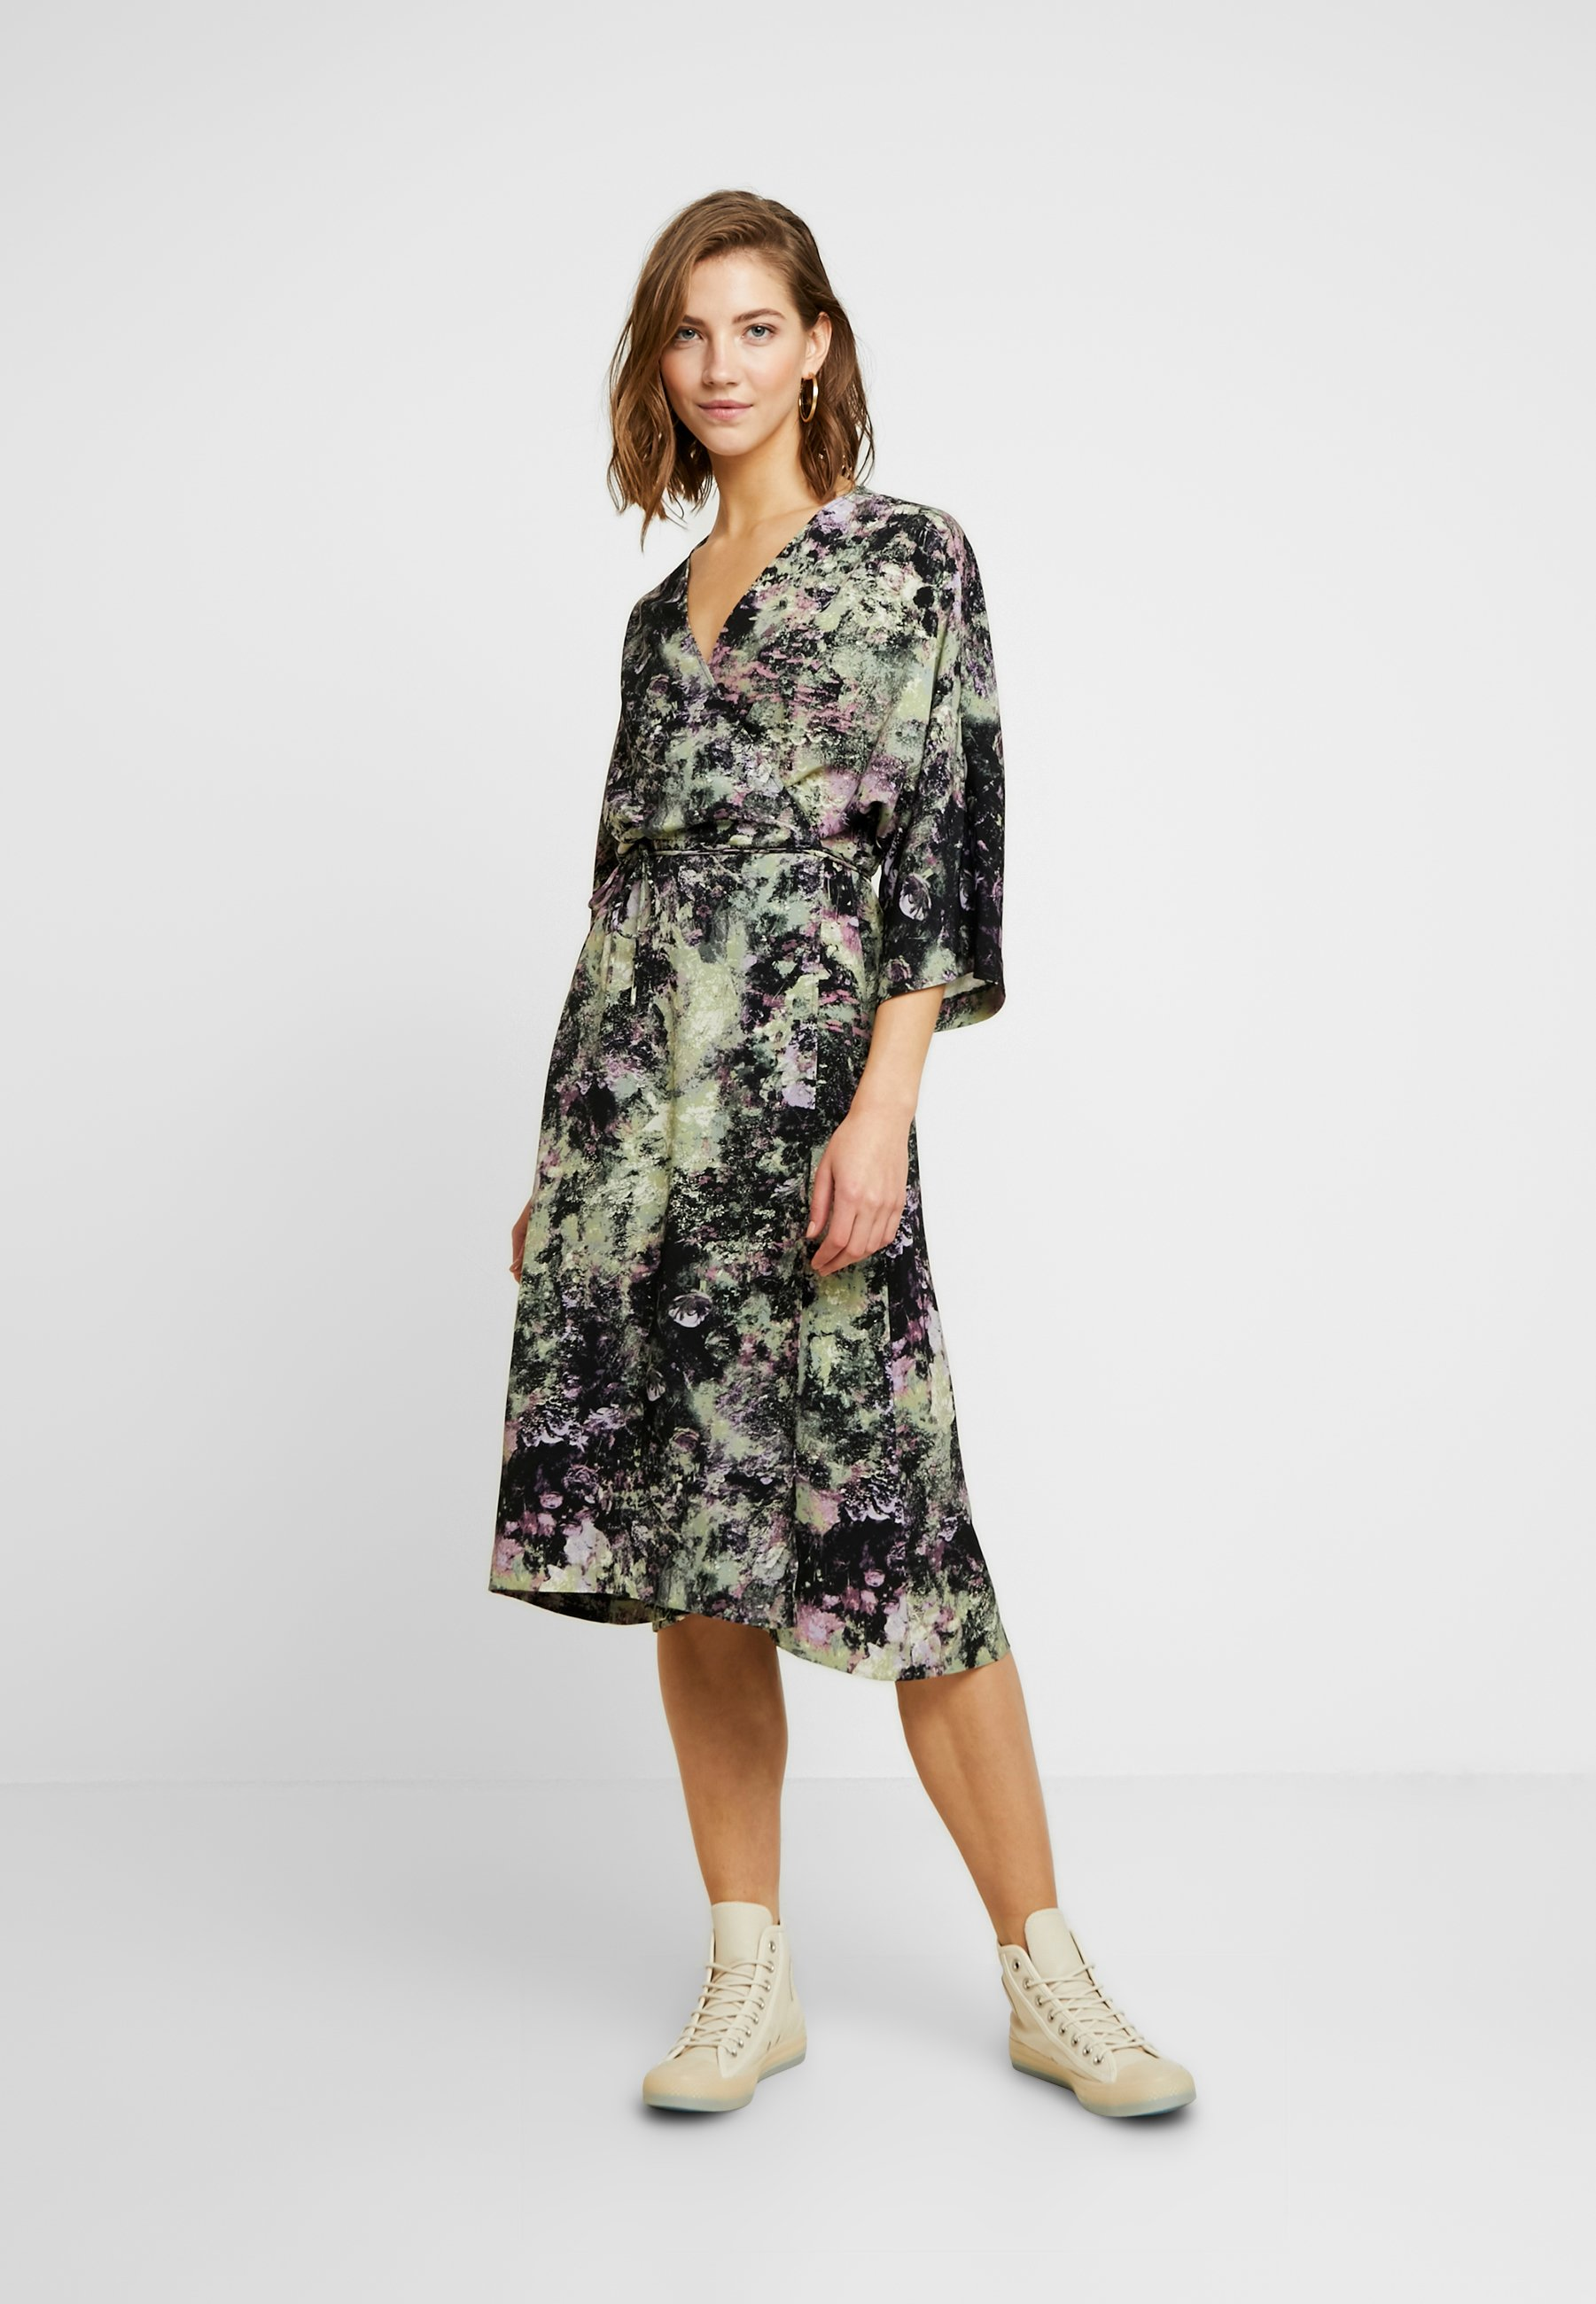 Monki Lollo Dress - Korte Jurk Multi-coloured 6apUL97Q